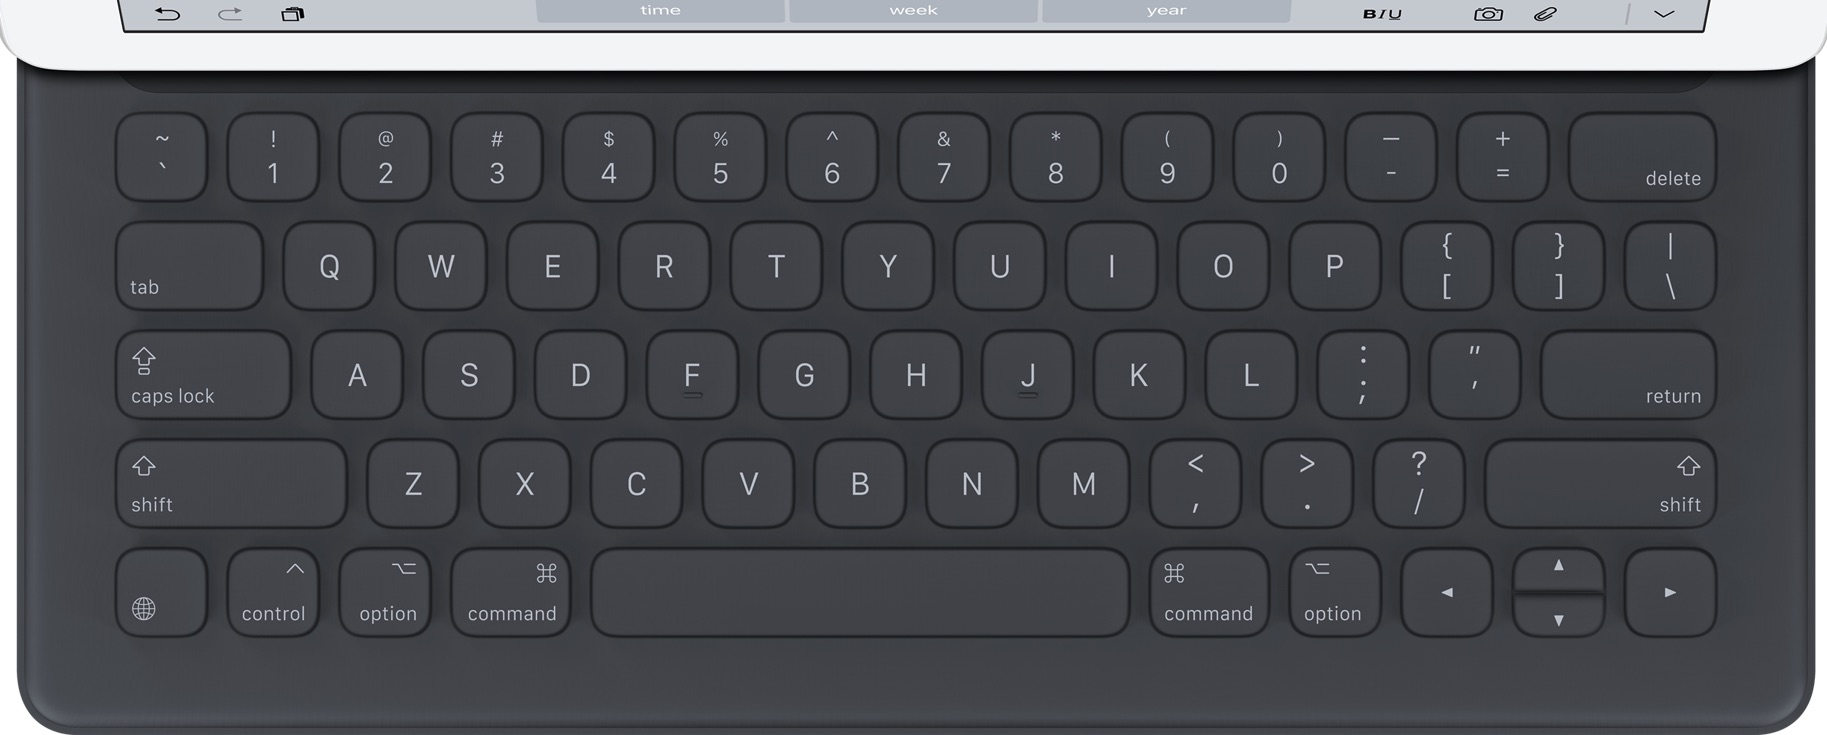 实际尺寸图像 iPad Smart Keyboard 。